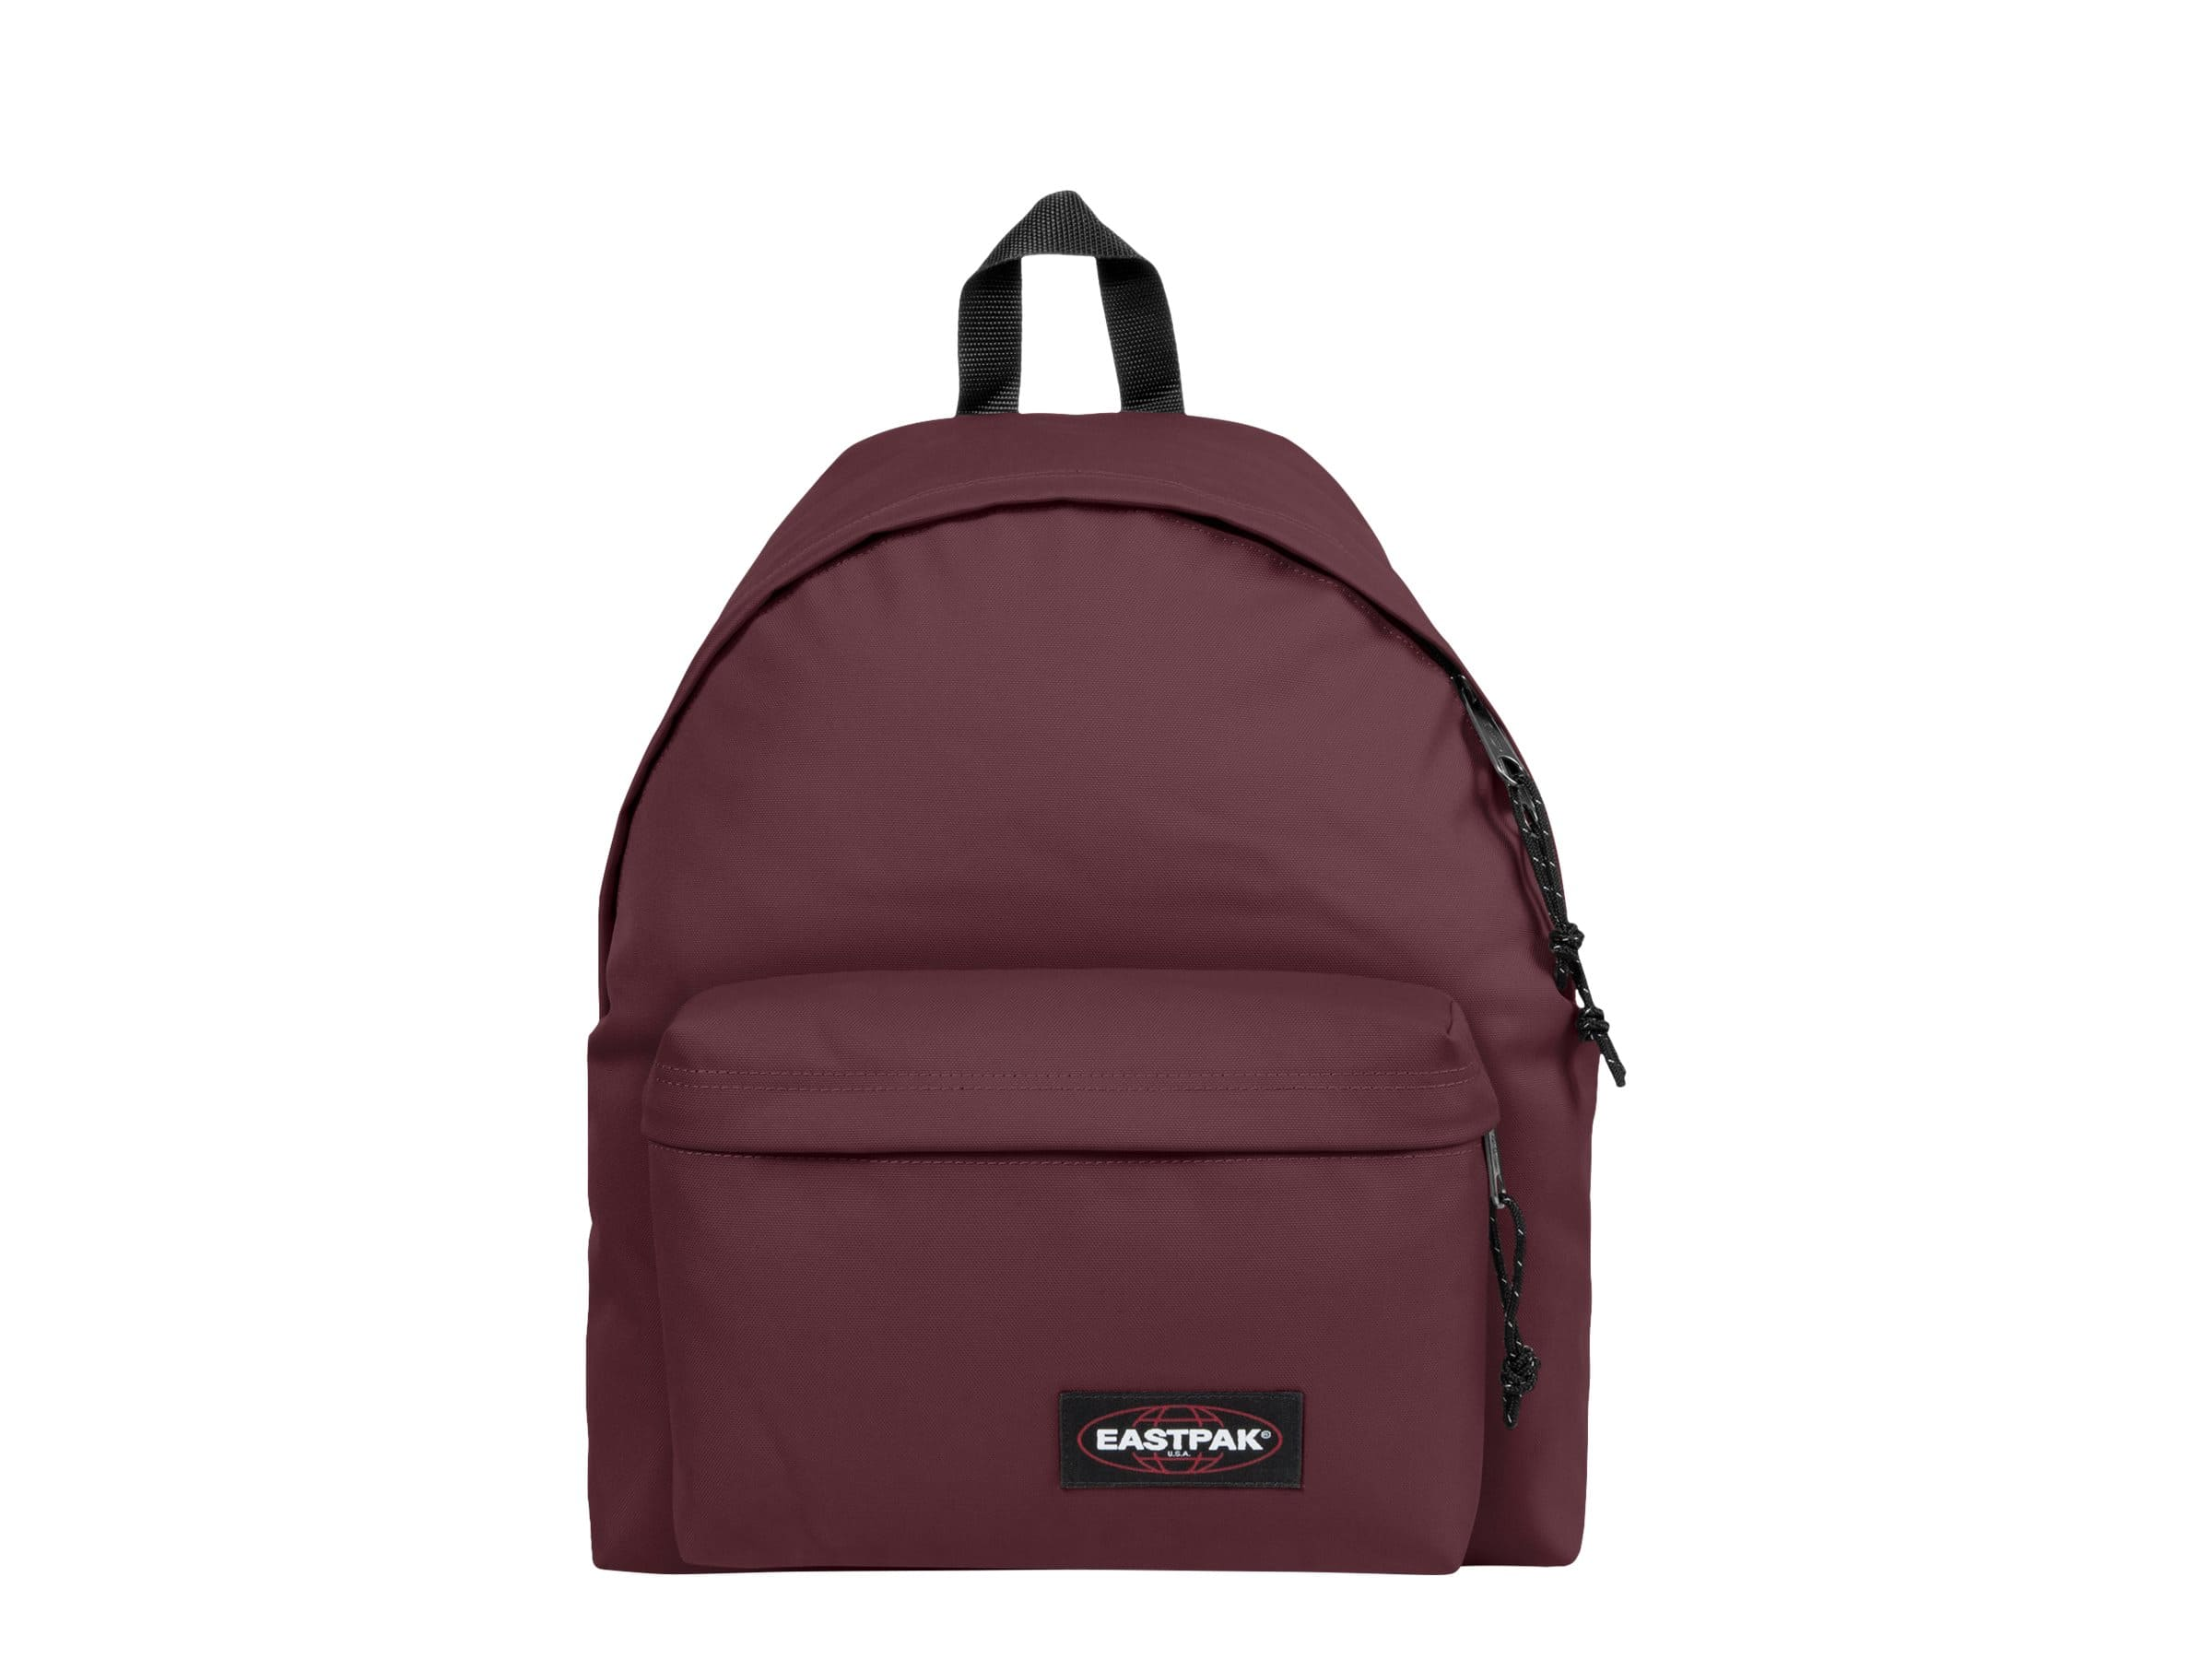 EASTPAK Padded Pak'r - Sac à dos - 40 cm - Upcoming wine